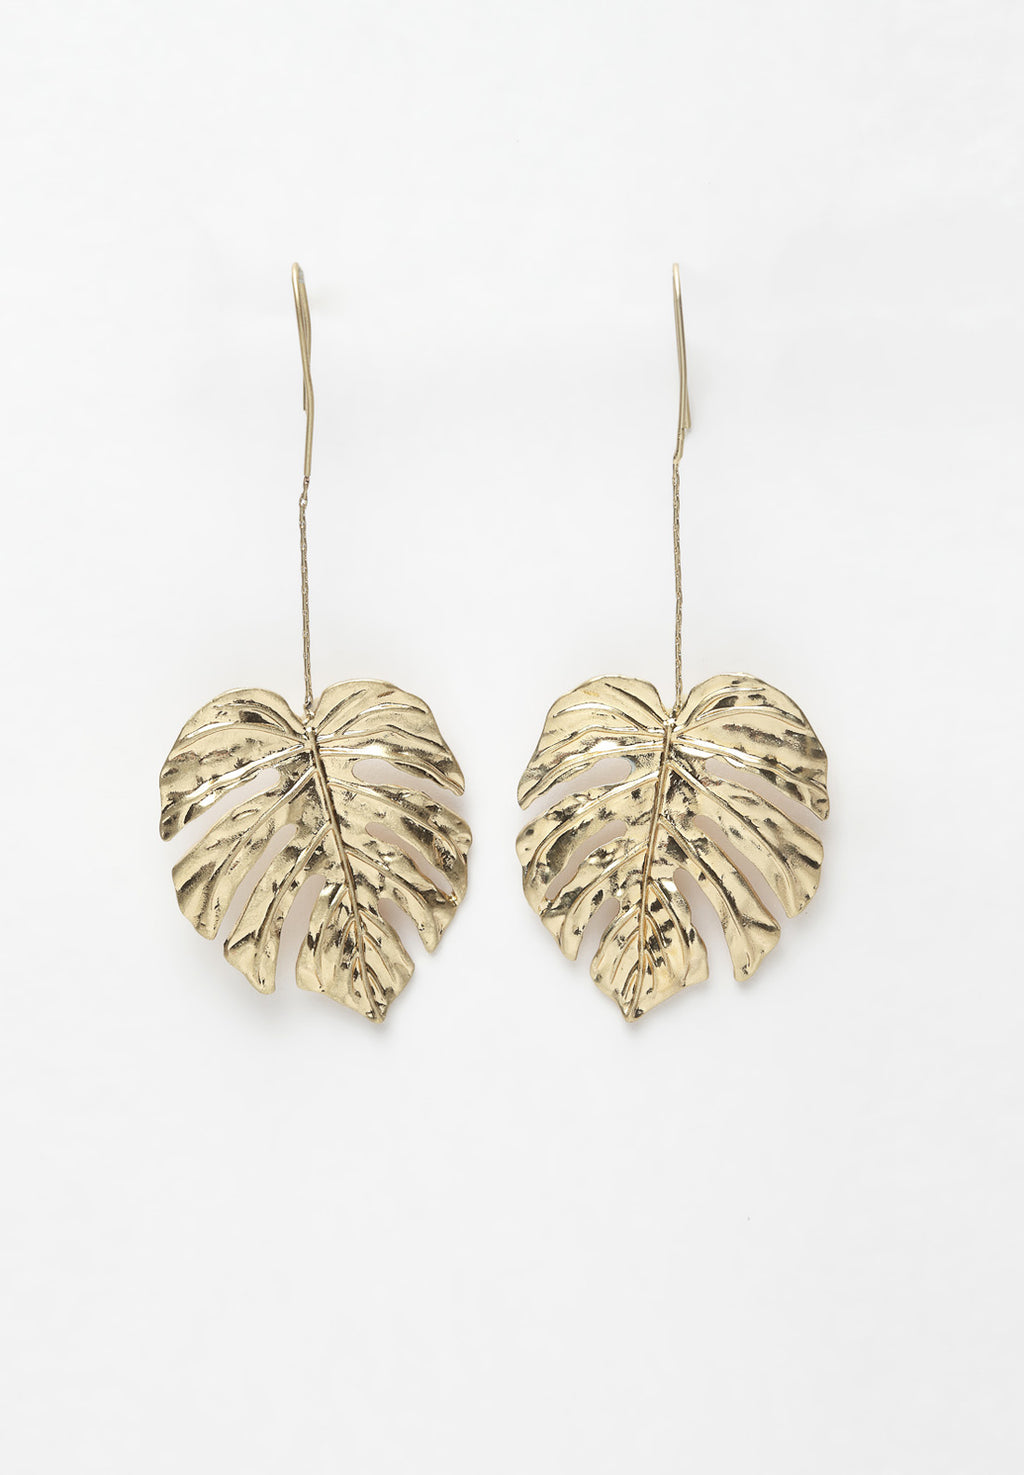 Avant-Garde Paris Gold Leaf Hanging Earrings